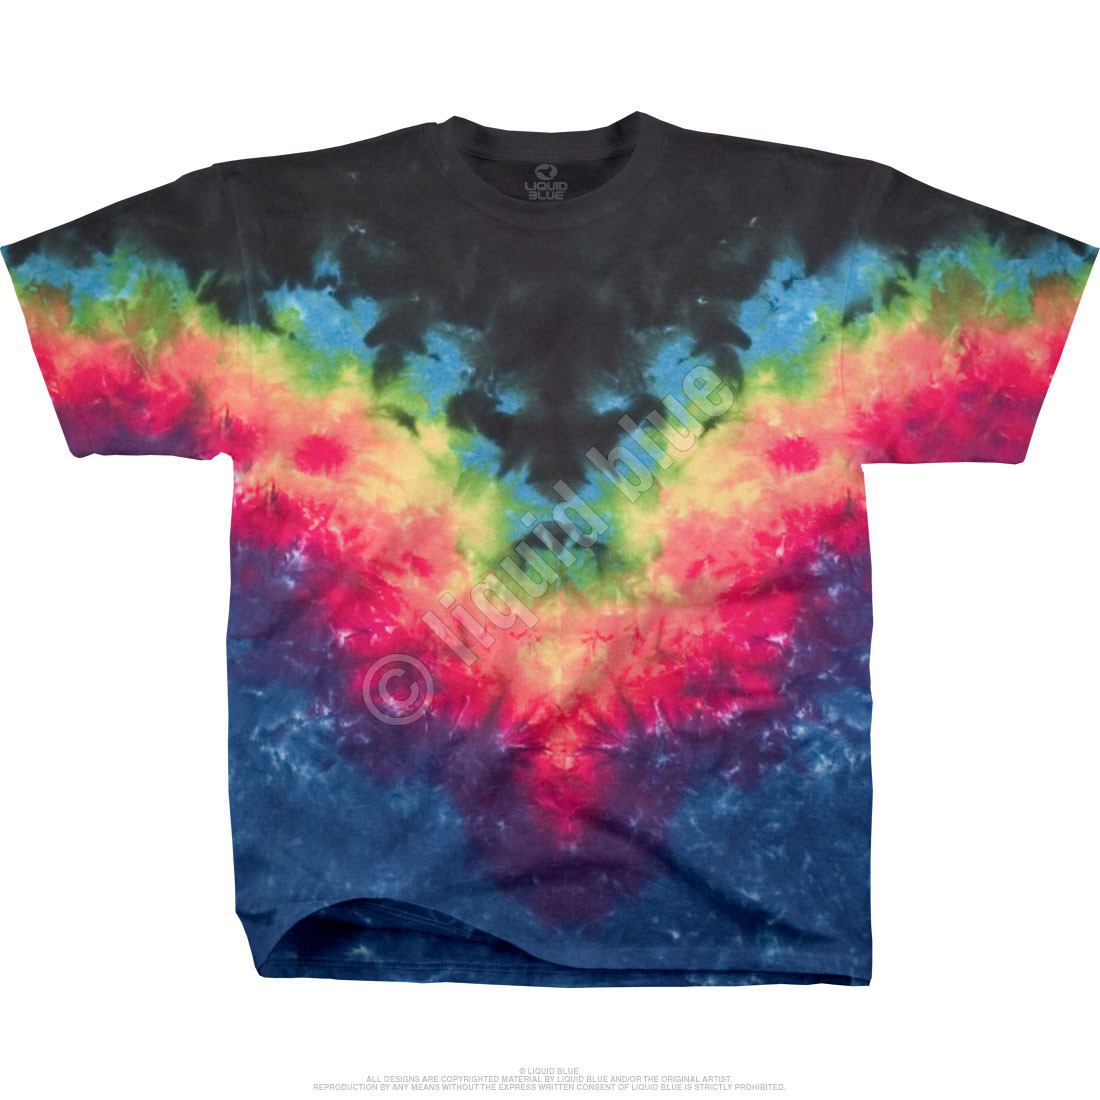 Symmetrical Rainbow Youth Unprinted Tie-Dye T-Shirt